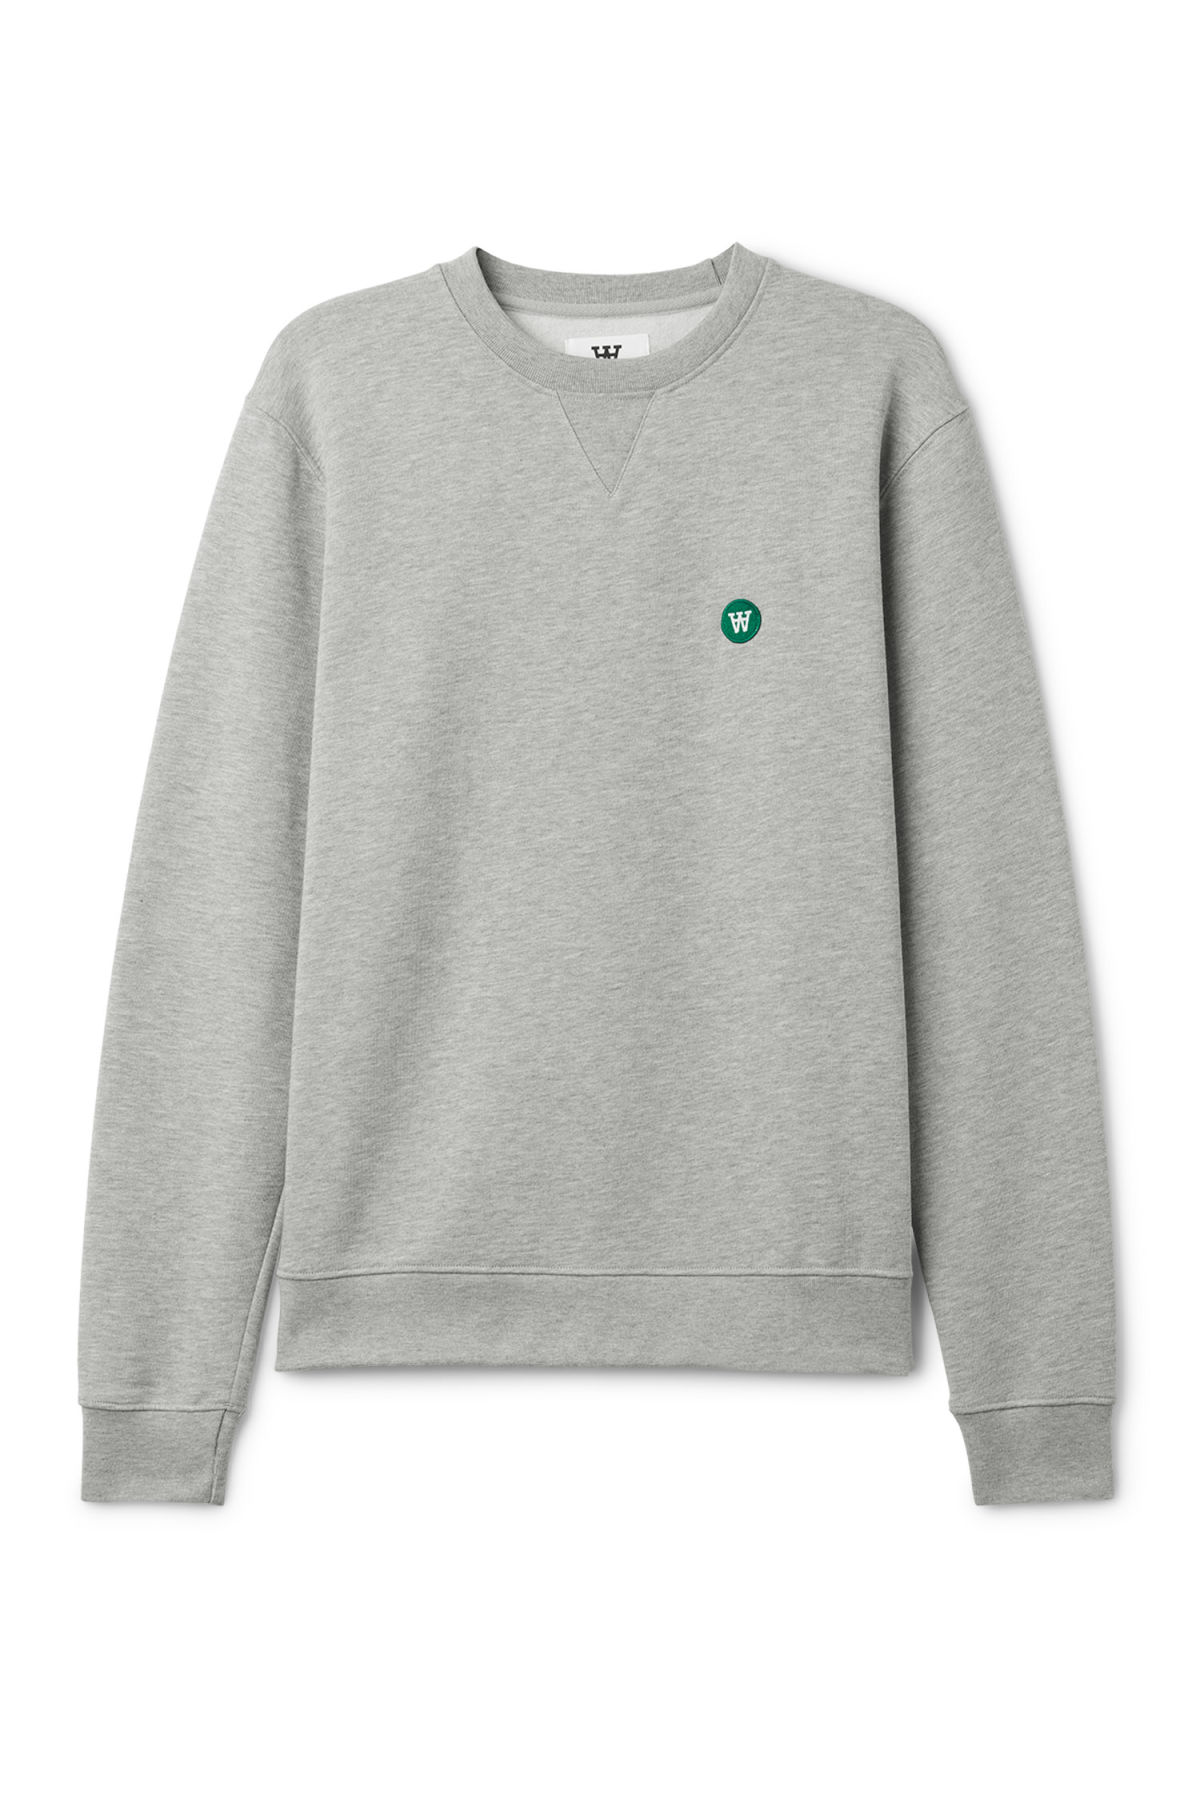 Front image of Weekday tye sweatshirt in grey